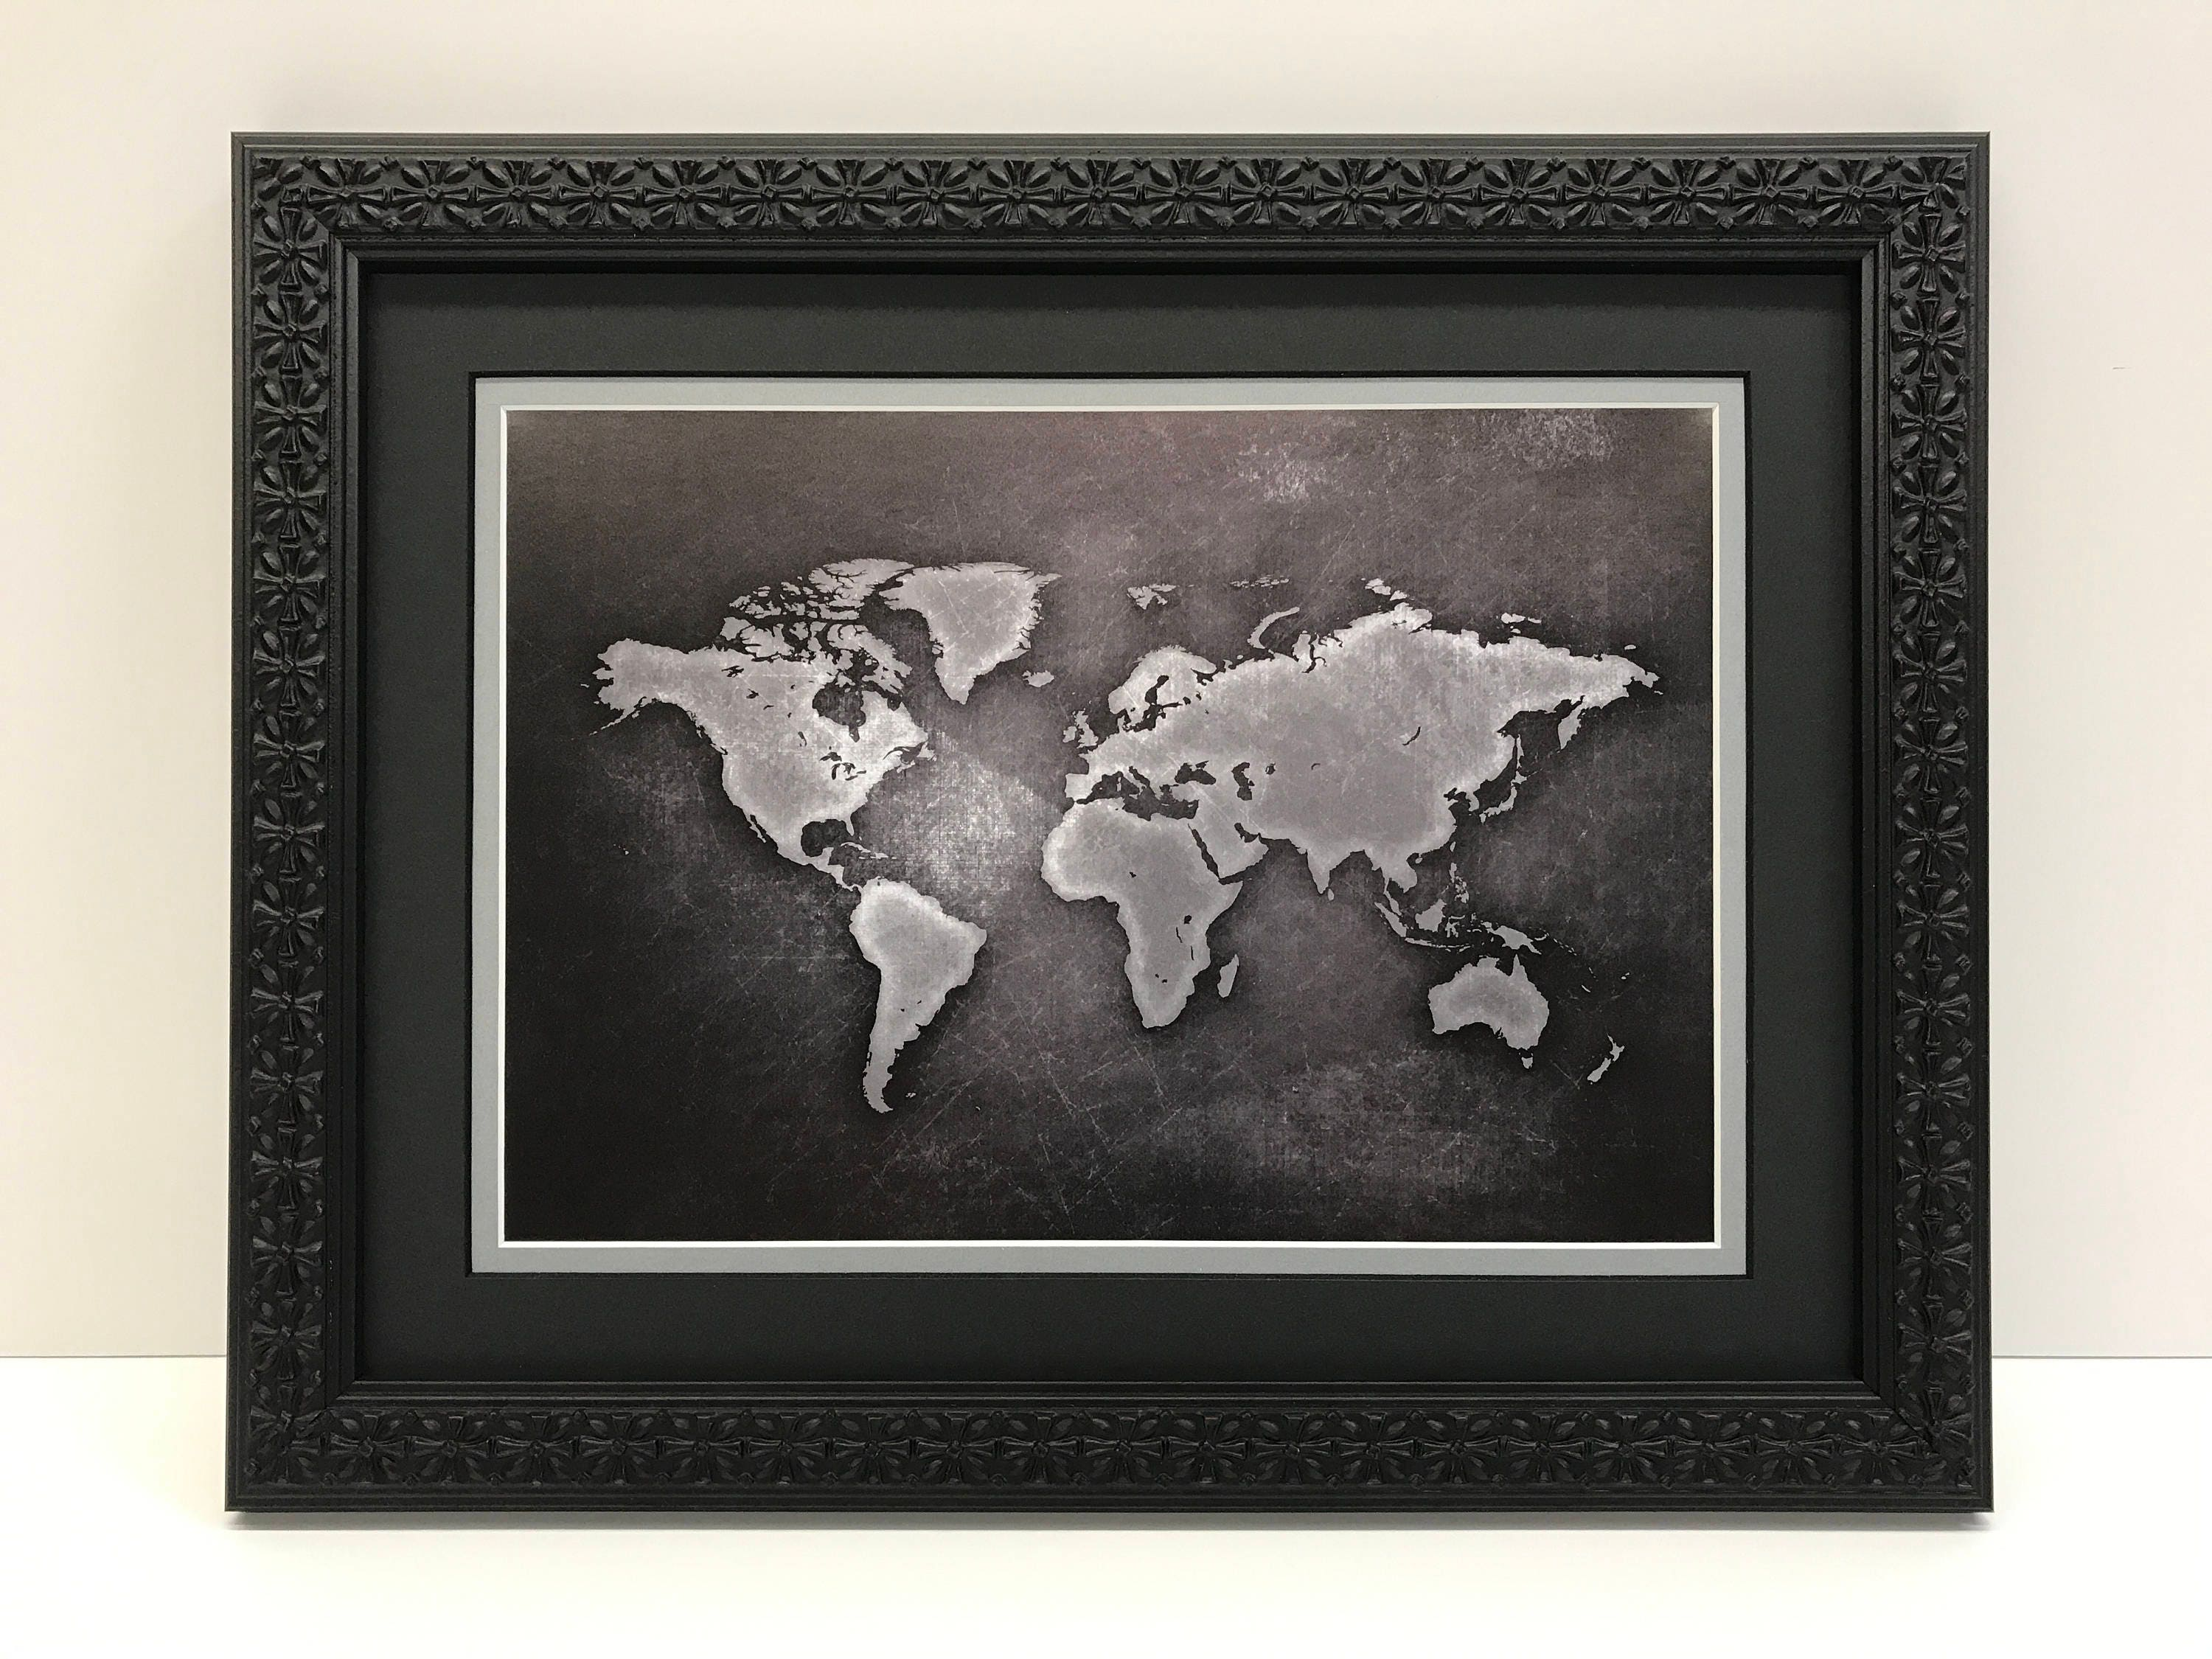 Framed world map world map art black gray world map description framed world map gumiabroncs Choice Image